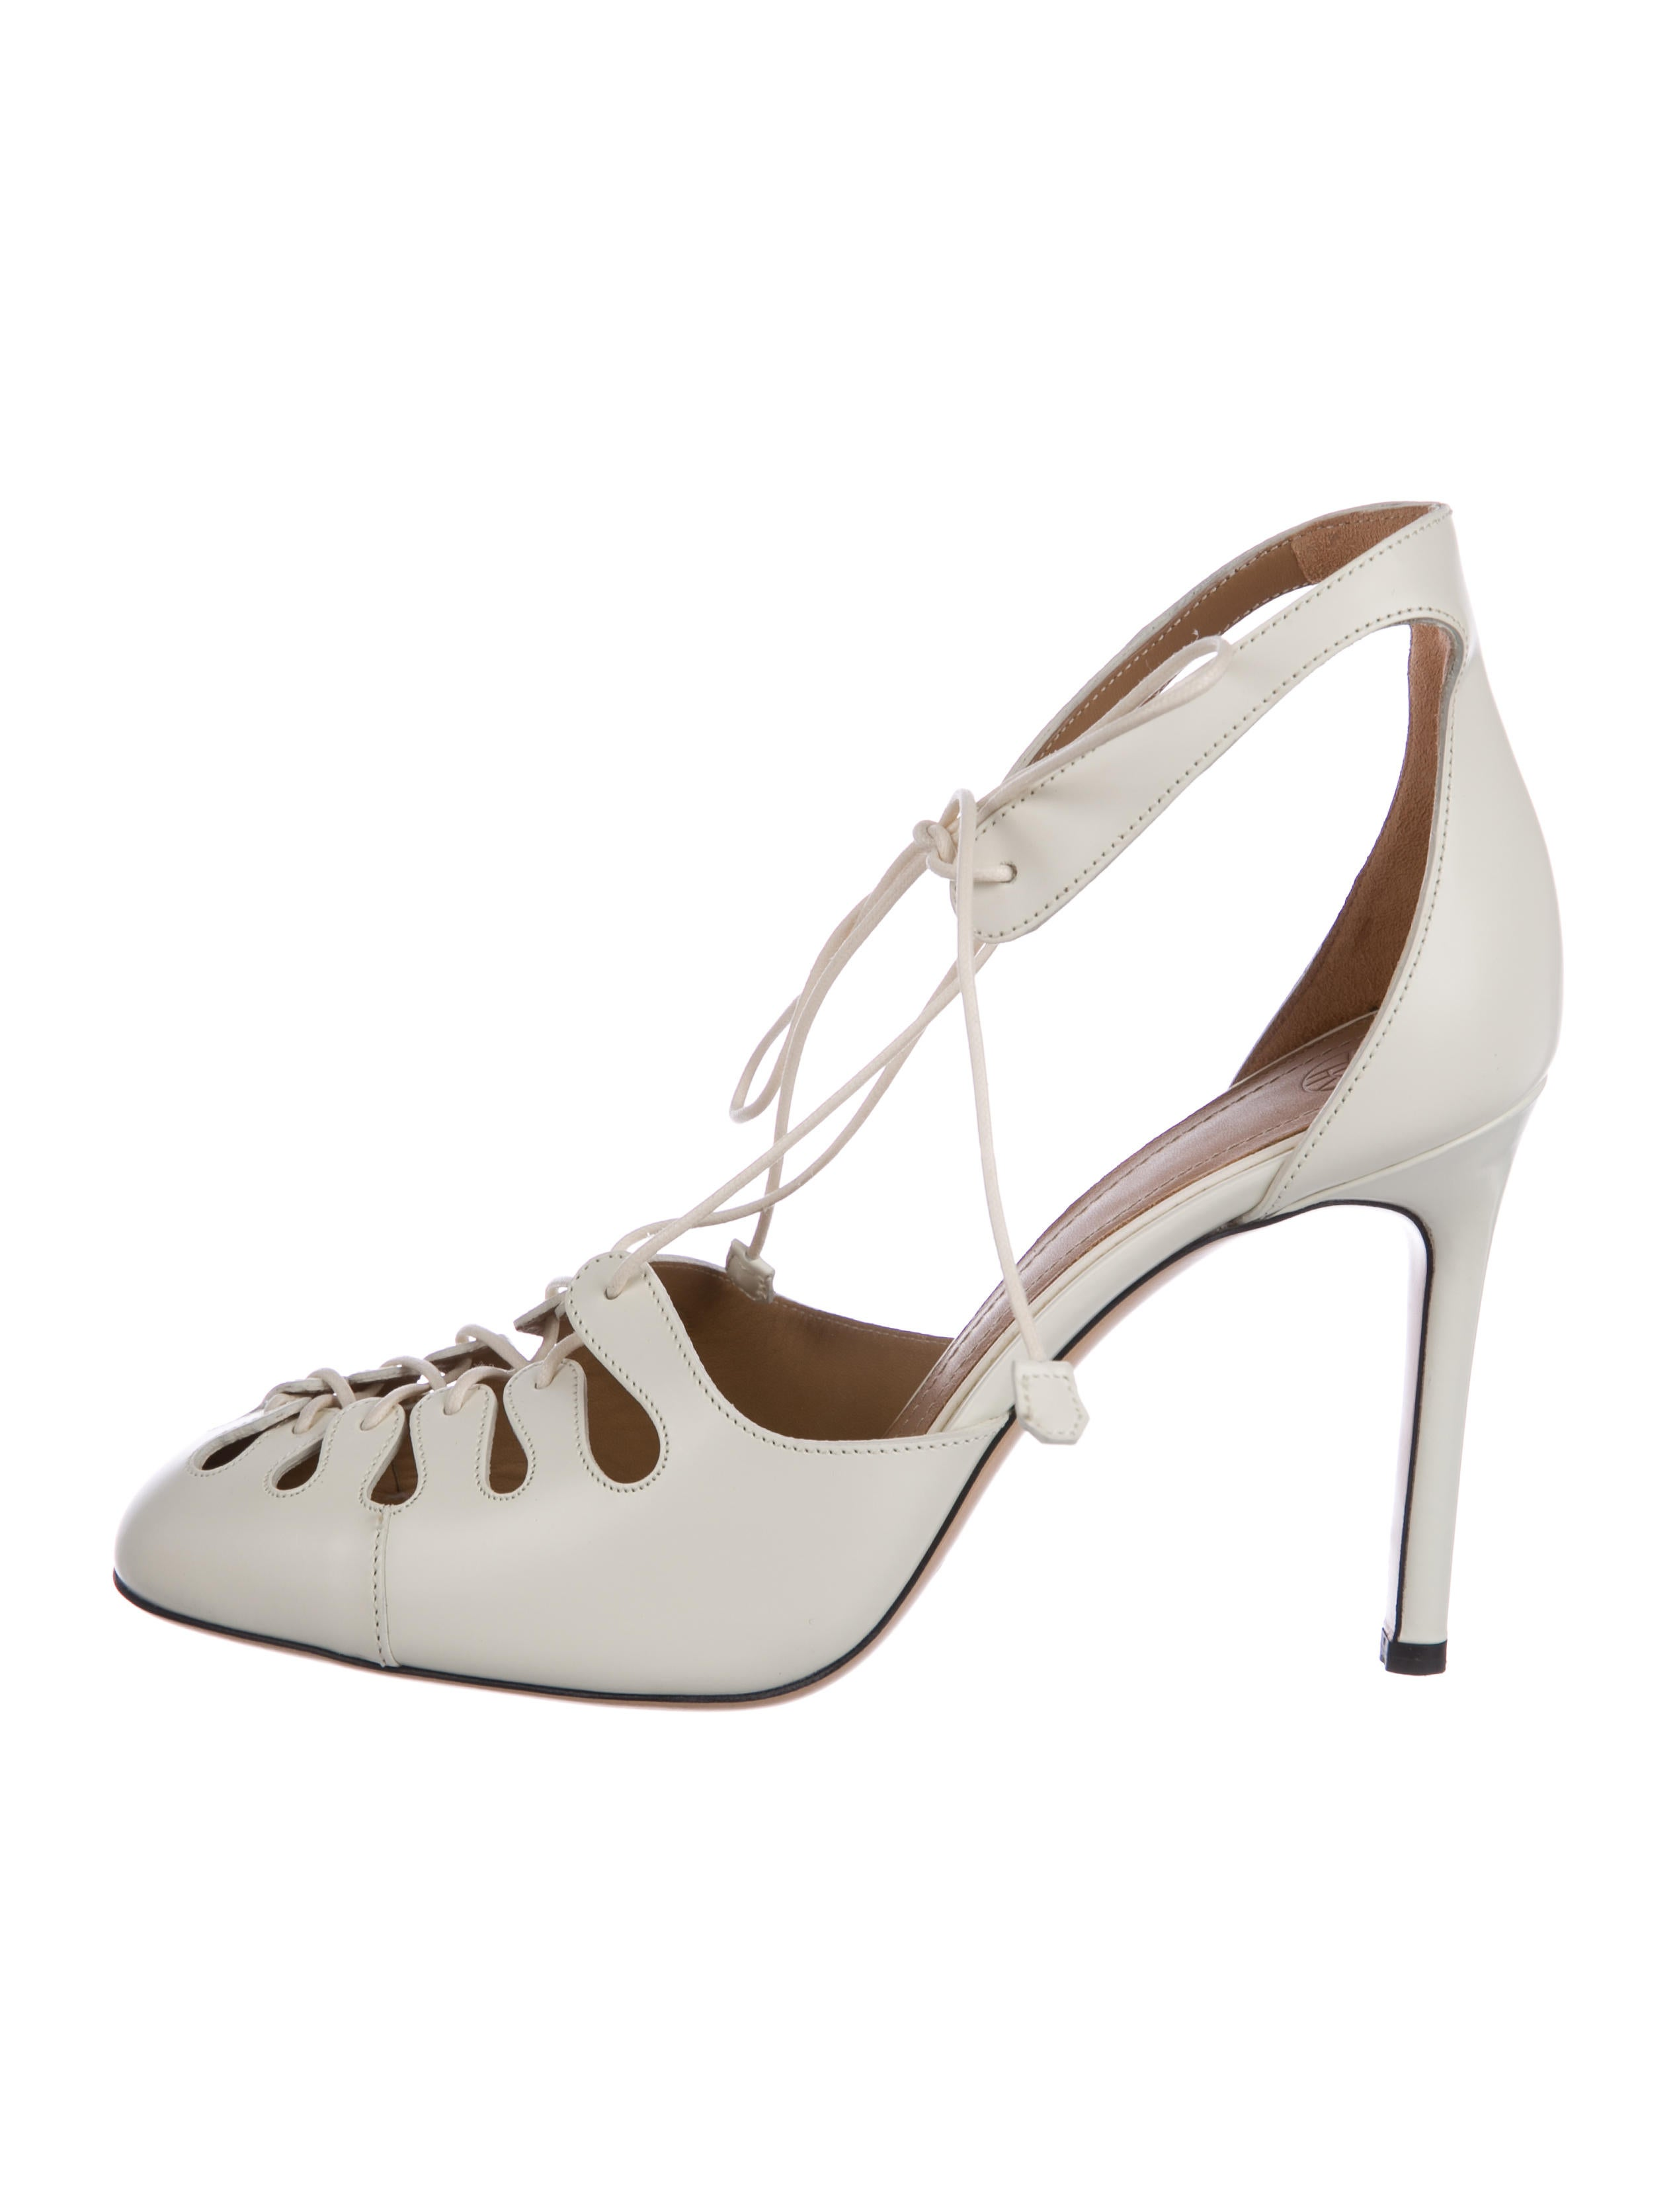 clearance in China Cheapest cheap price The Row Leather Square-Toe Pumps pre order for sale eqr1dx